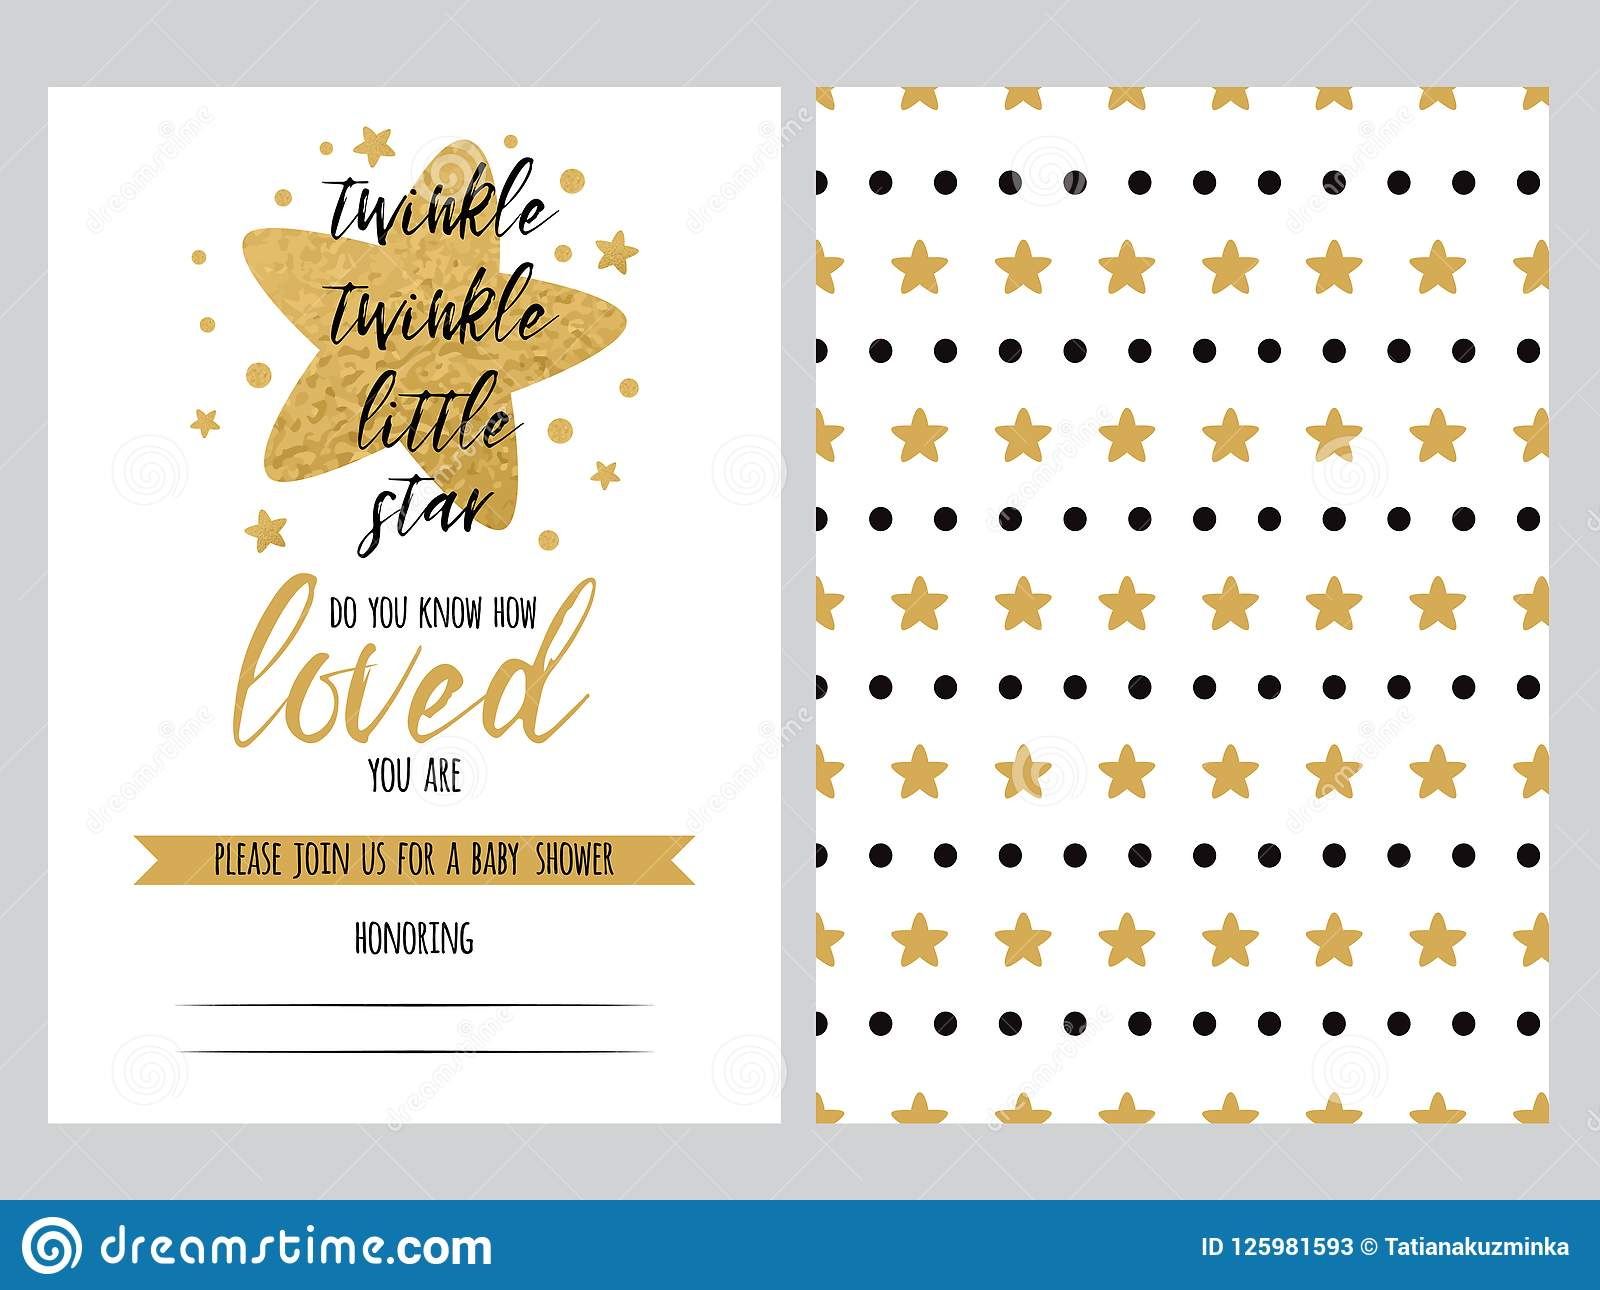 Baby Shower Invitation Template Backgtround With Cute Golden Star